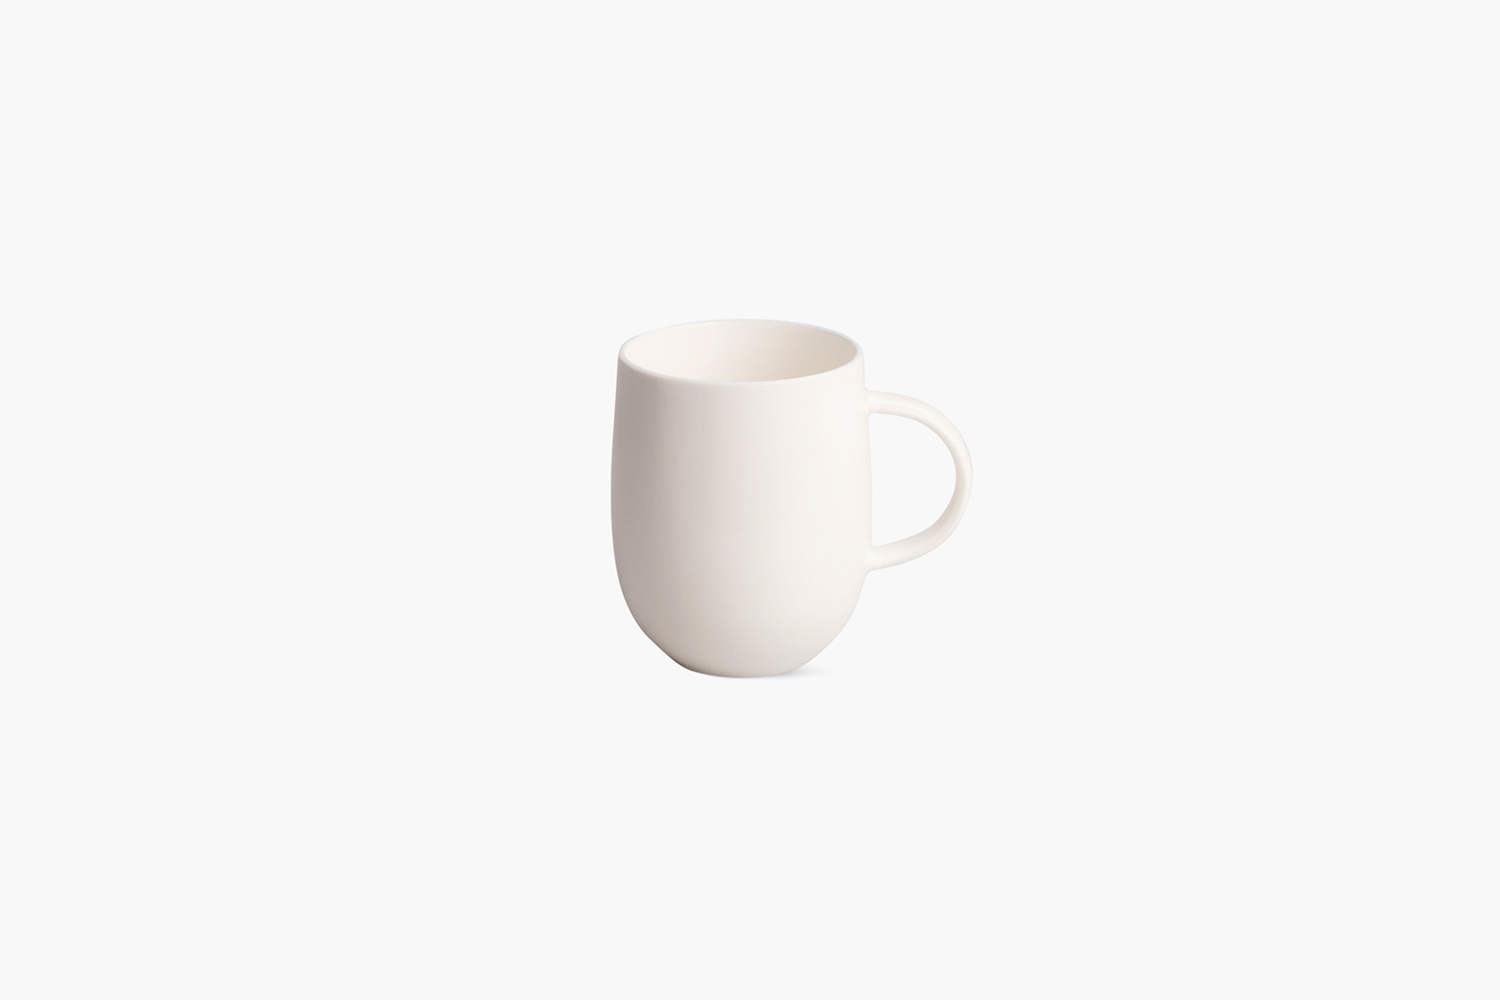 the alessi all time mugs set of 4 is $58 at design within reach. 18